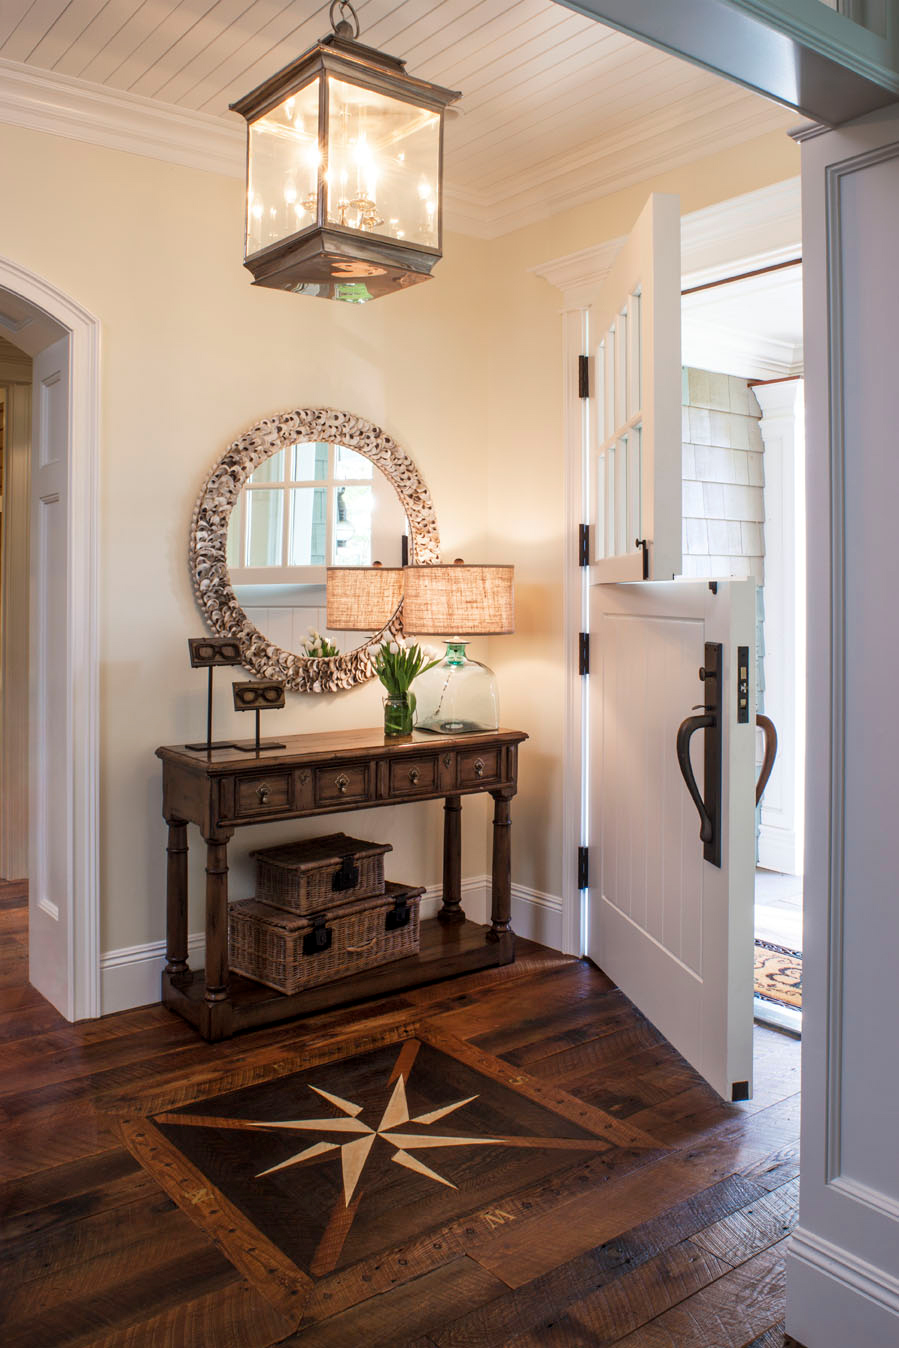 Foyer Ideas Small : Best rustic entryway decorating ideas and designs for